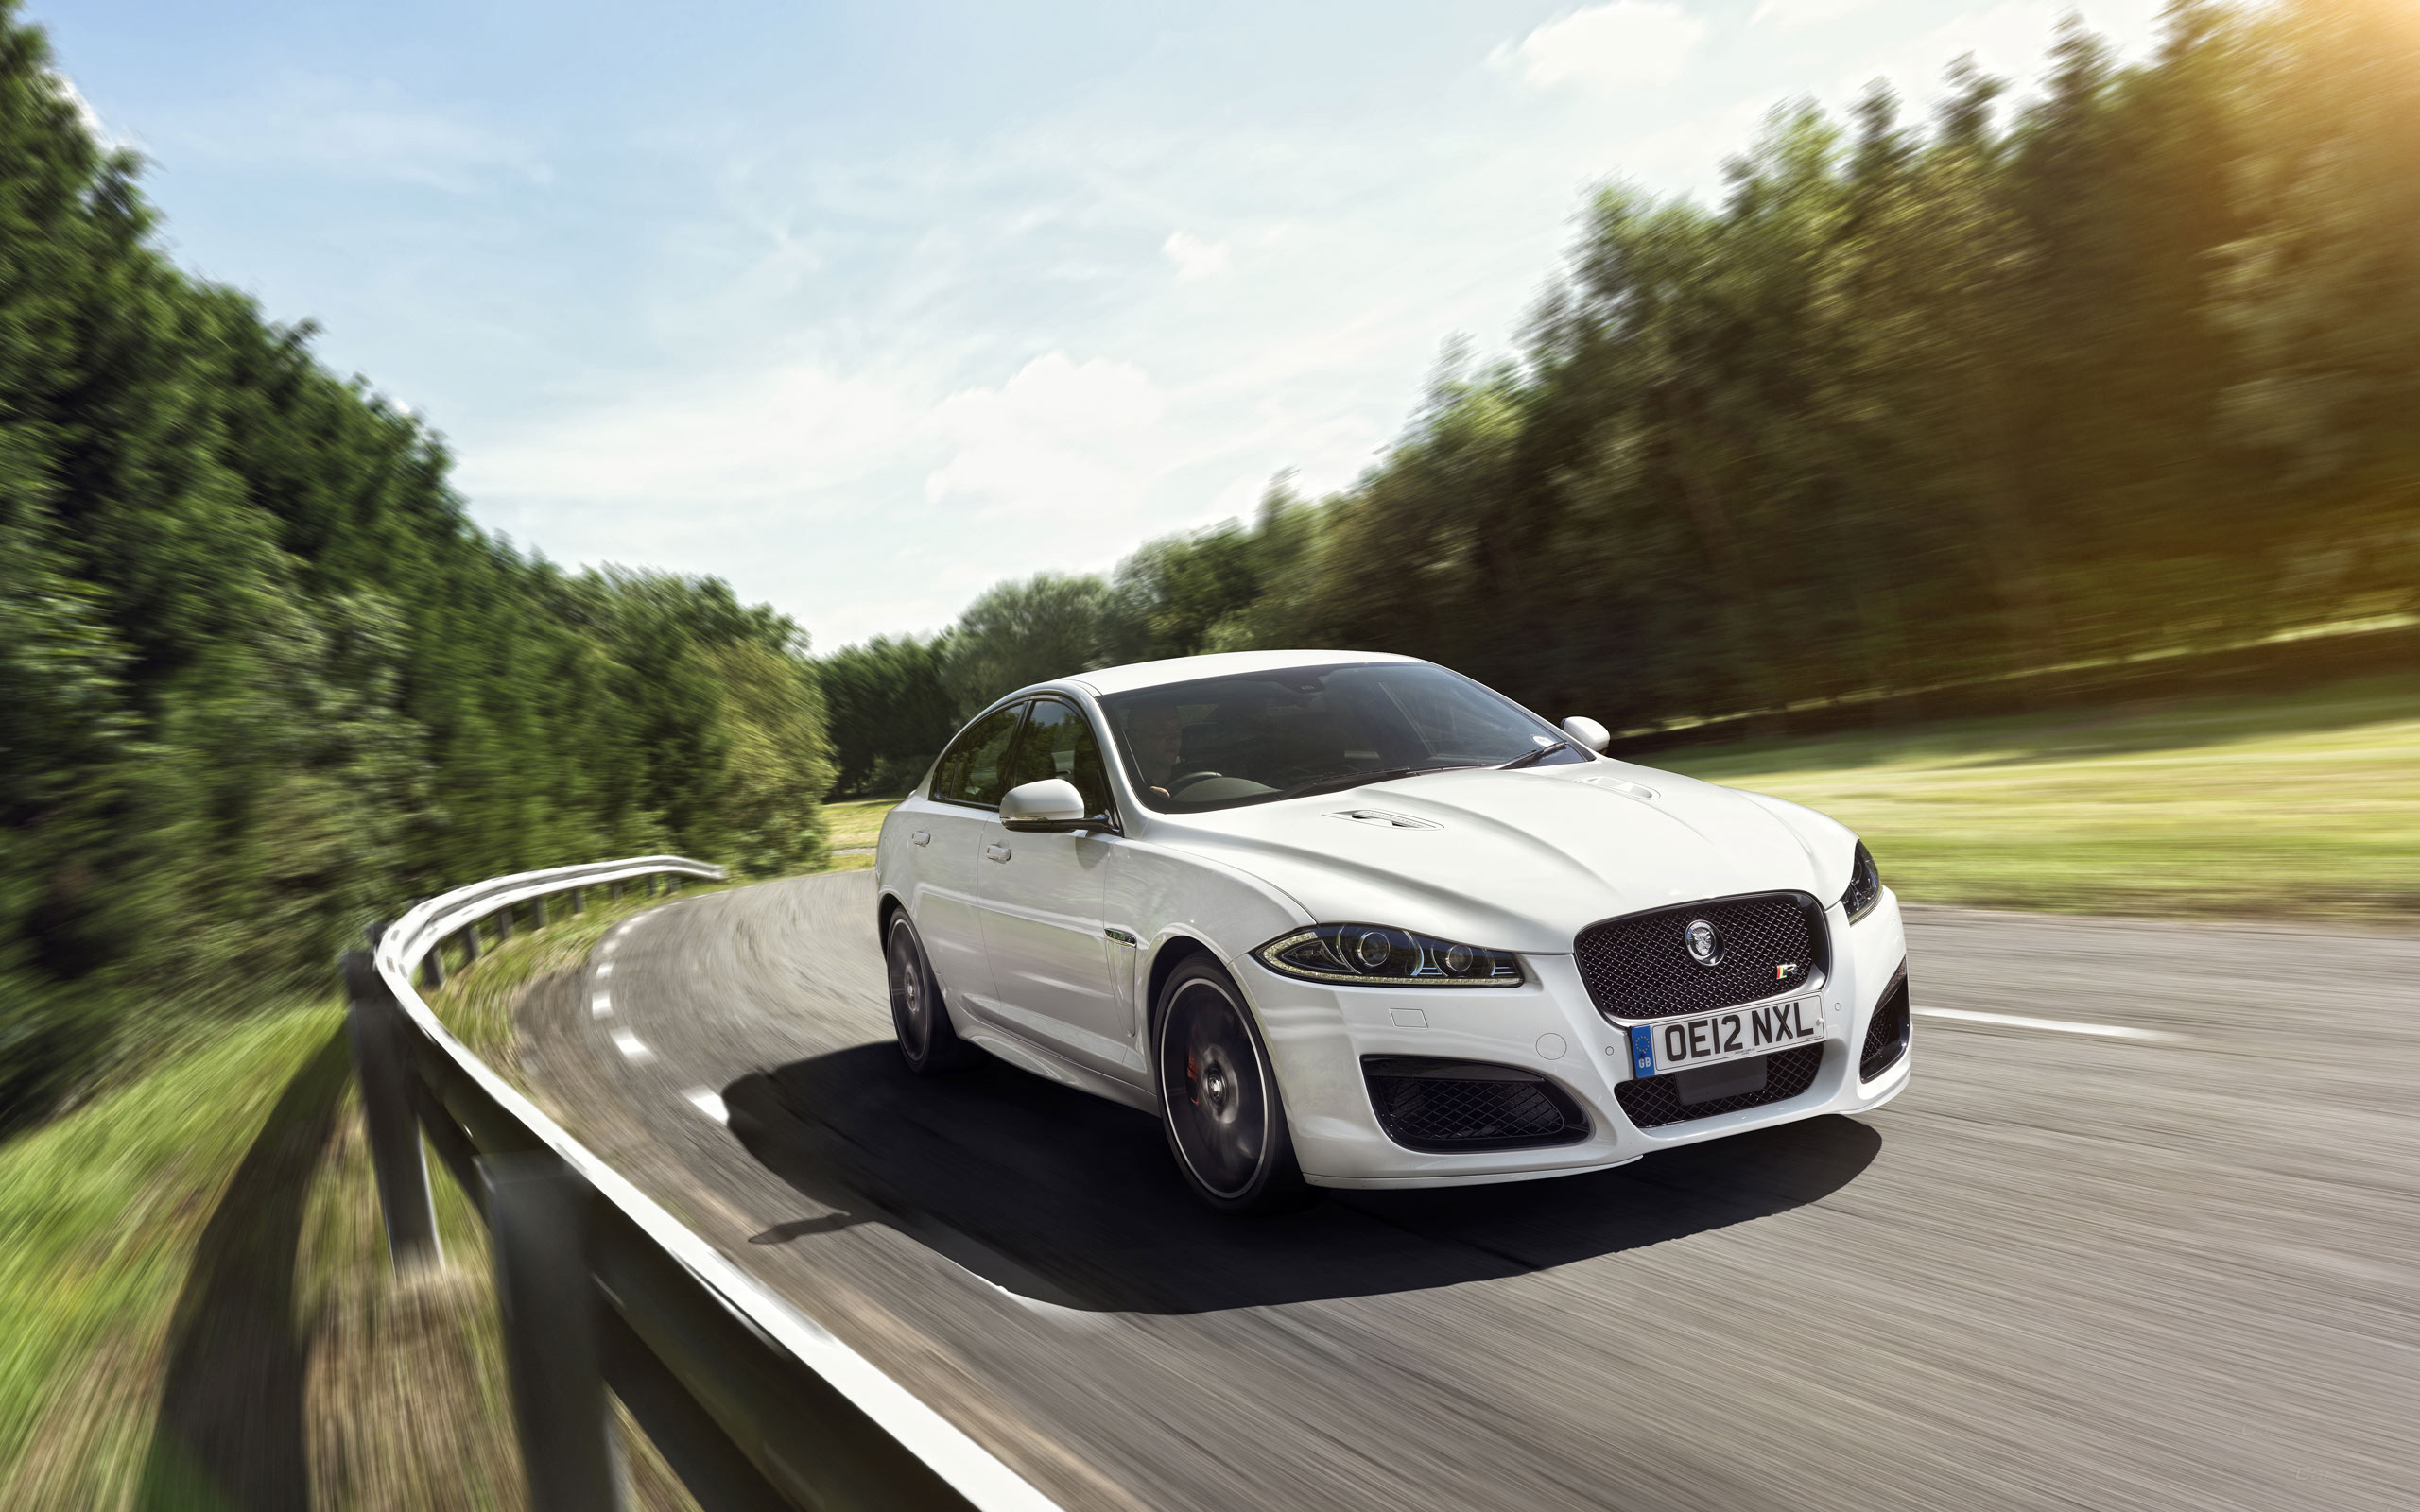 White Jaguar Car Wallpapers High Resolution Is Cool Wallpapers